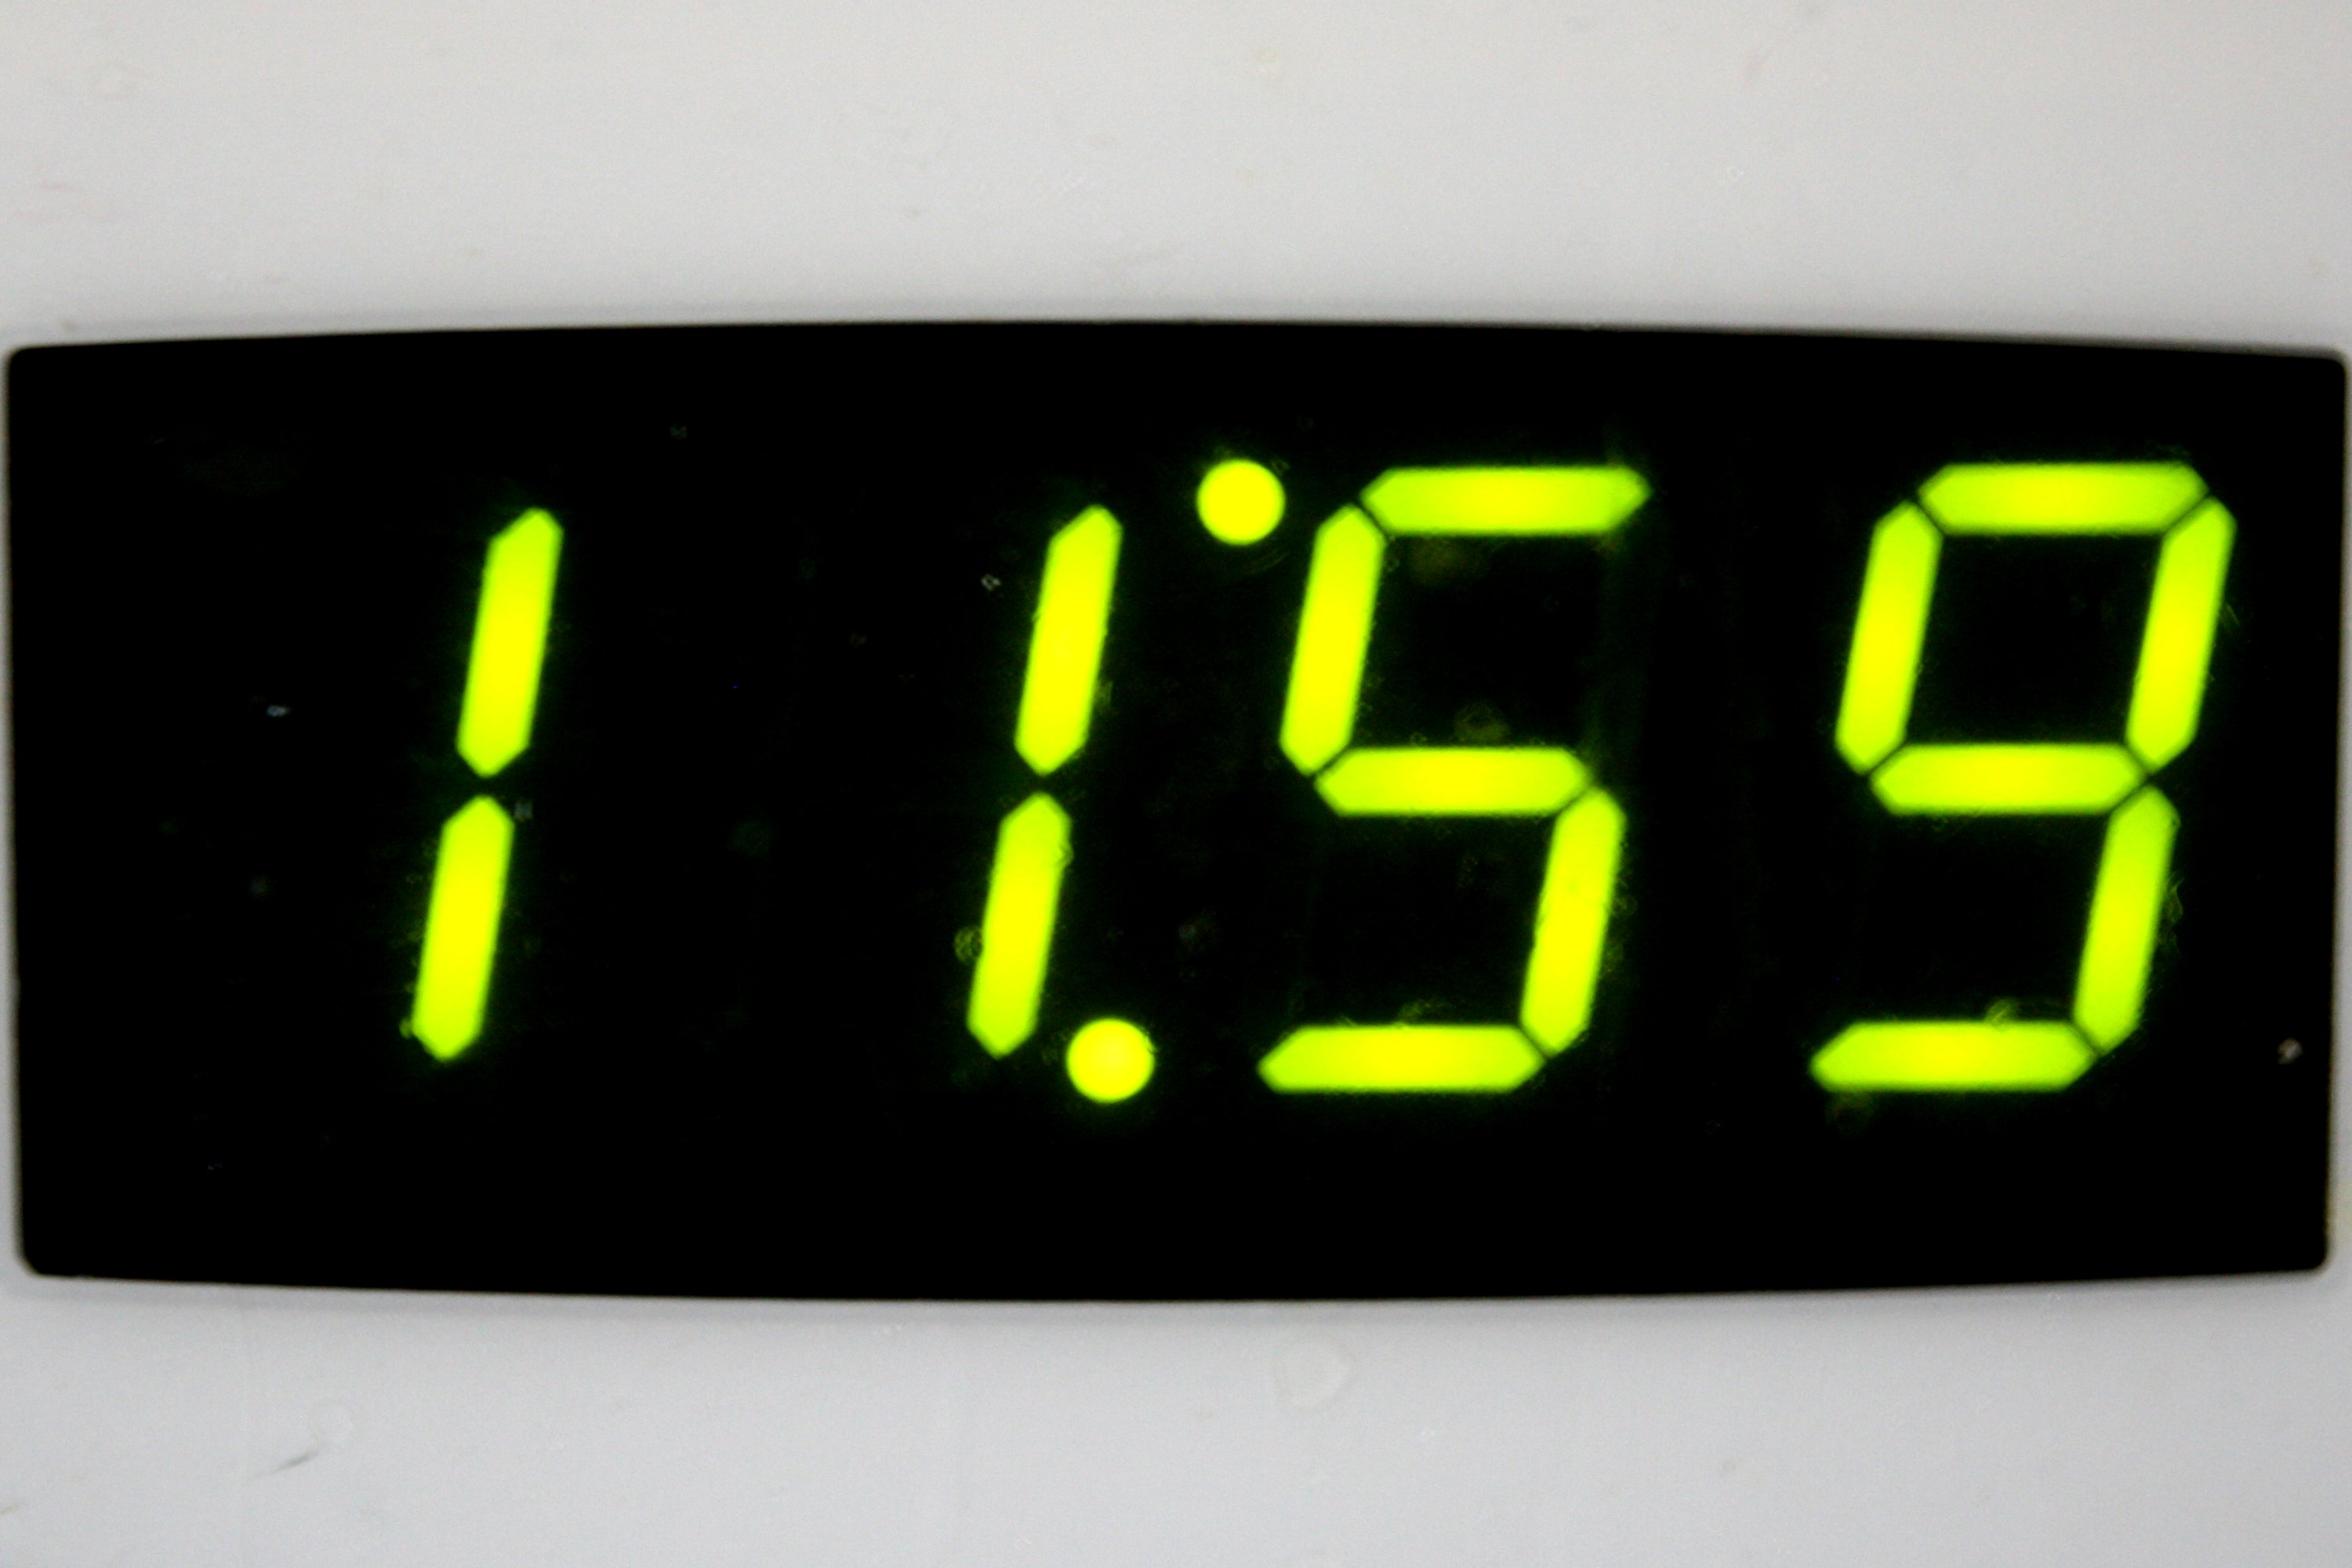 Digital Clock Reading 11:59